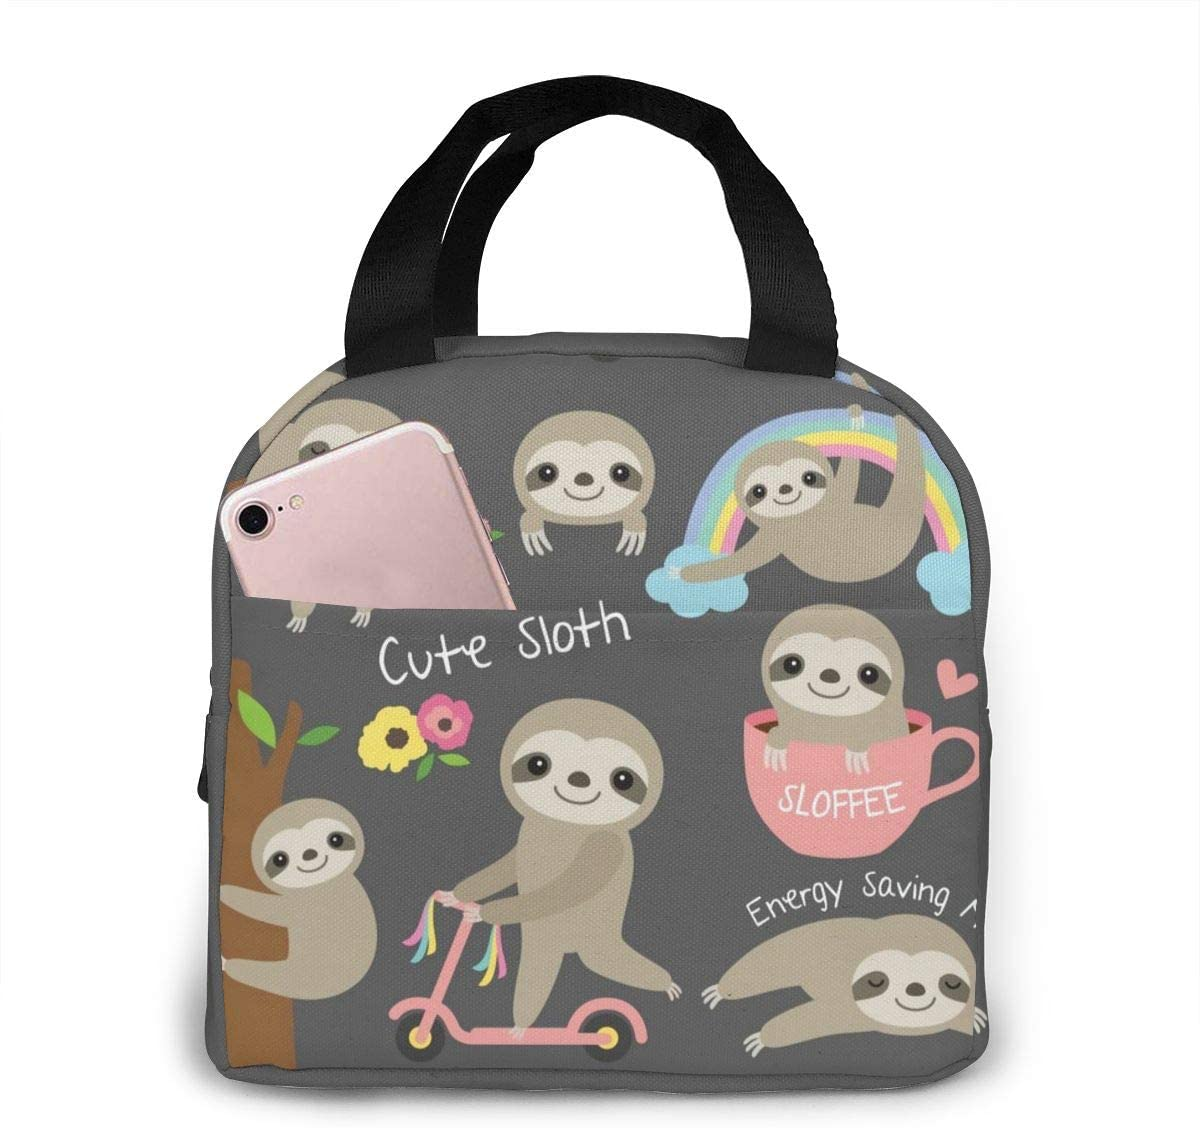 MSGUIDE Cute Sloth Insulated Lunch Bag Leakproof Cooler Lunch Box for Men Women Adult - Reusable Thermal Tote Bag for Office Work School Picnic Beach